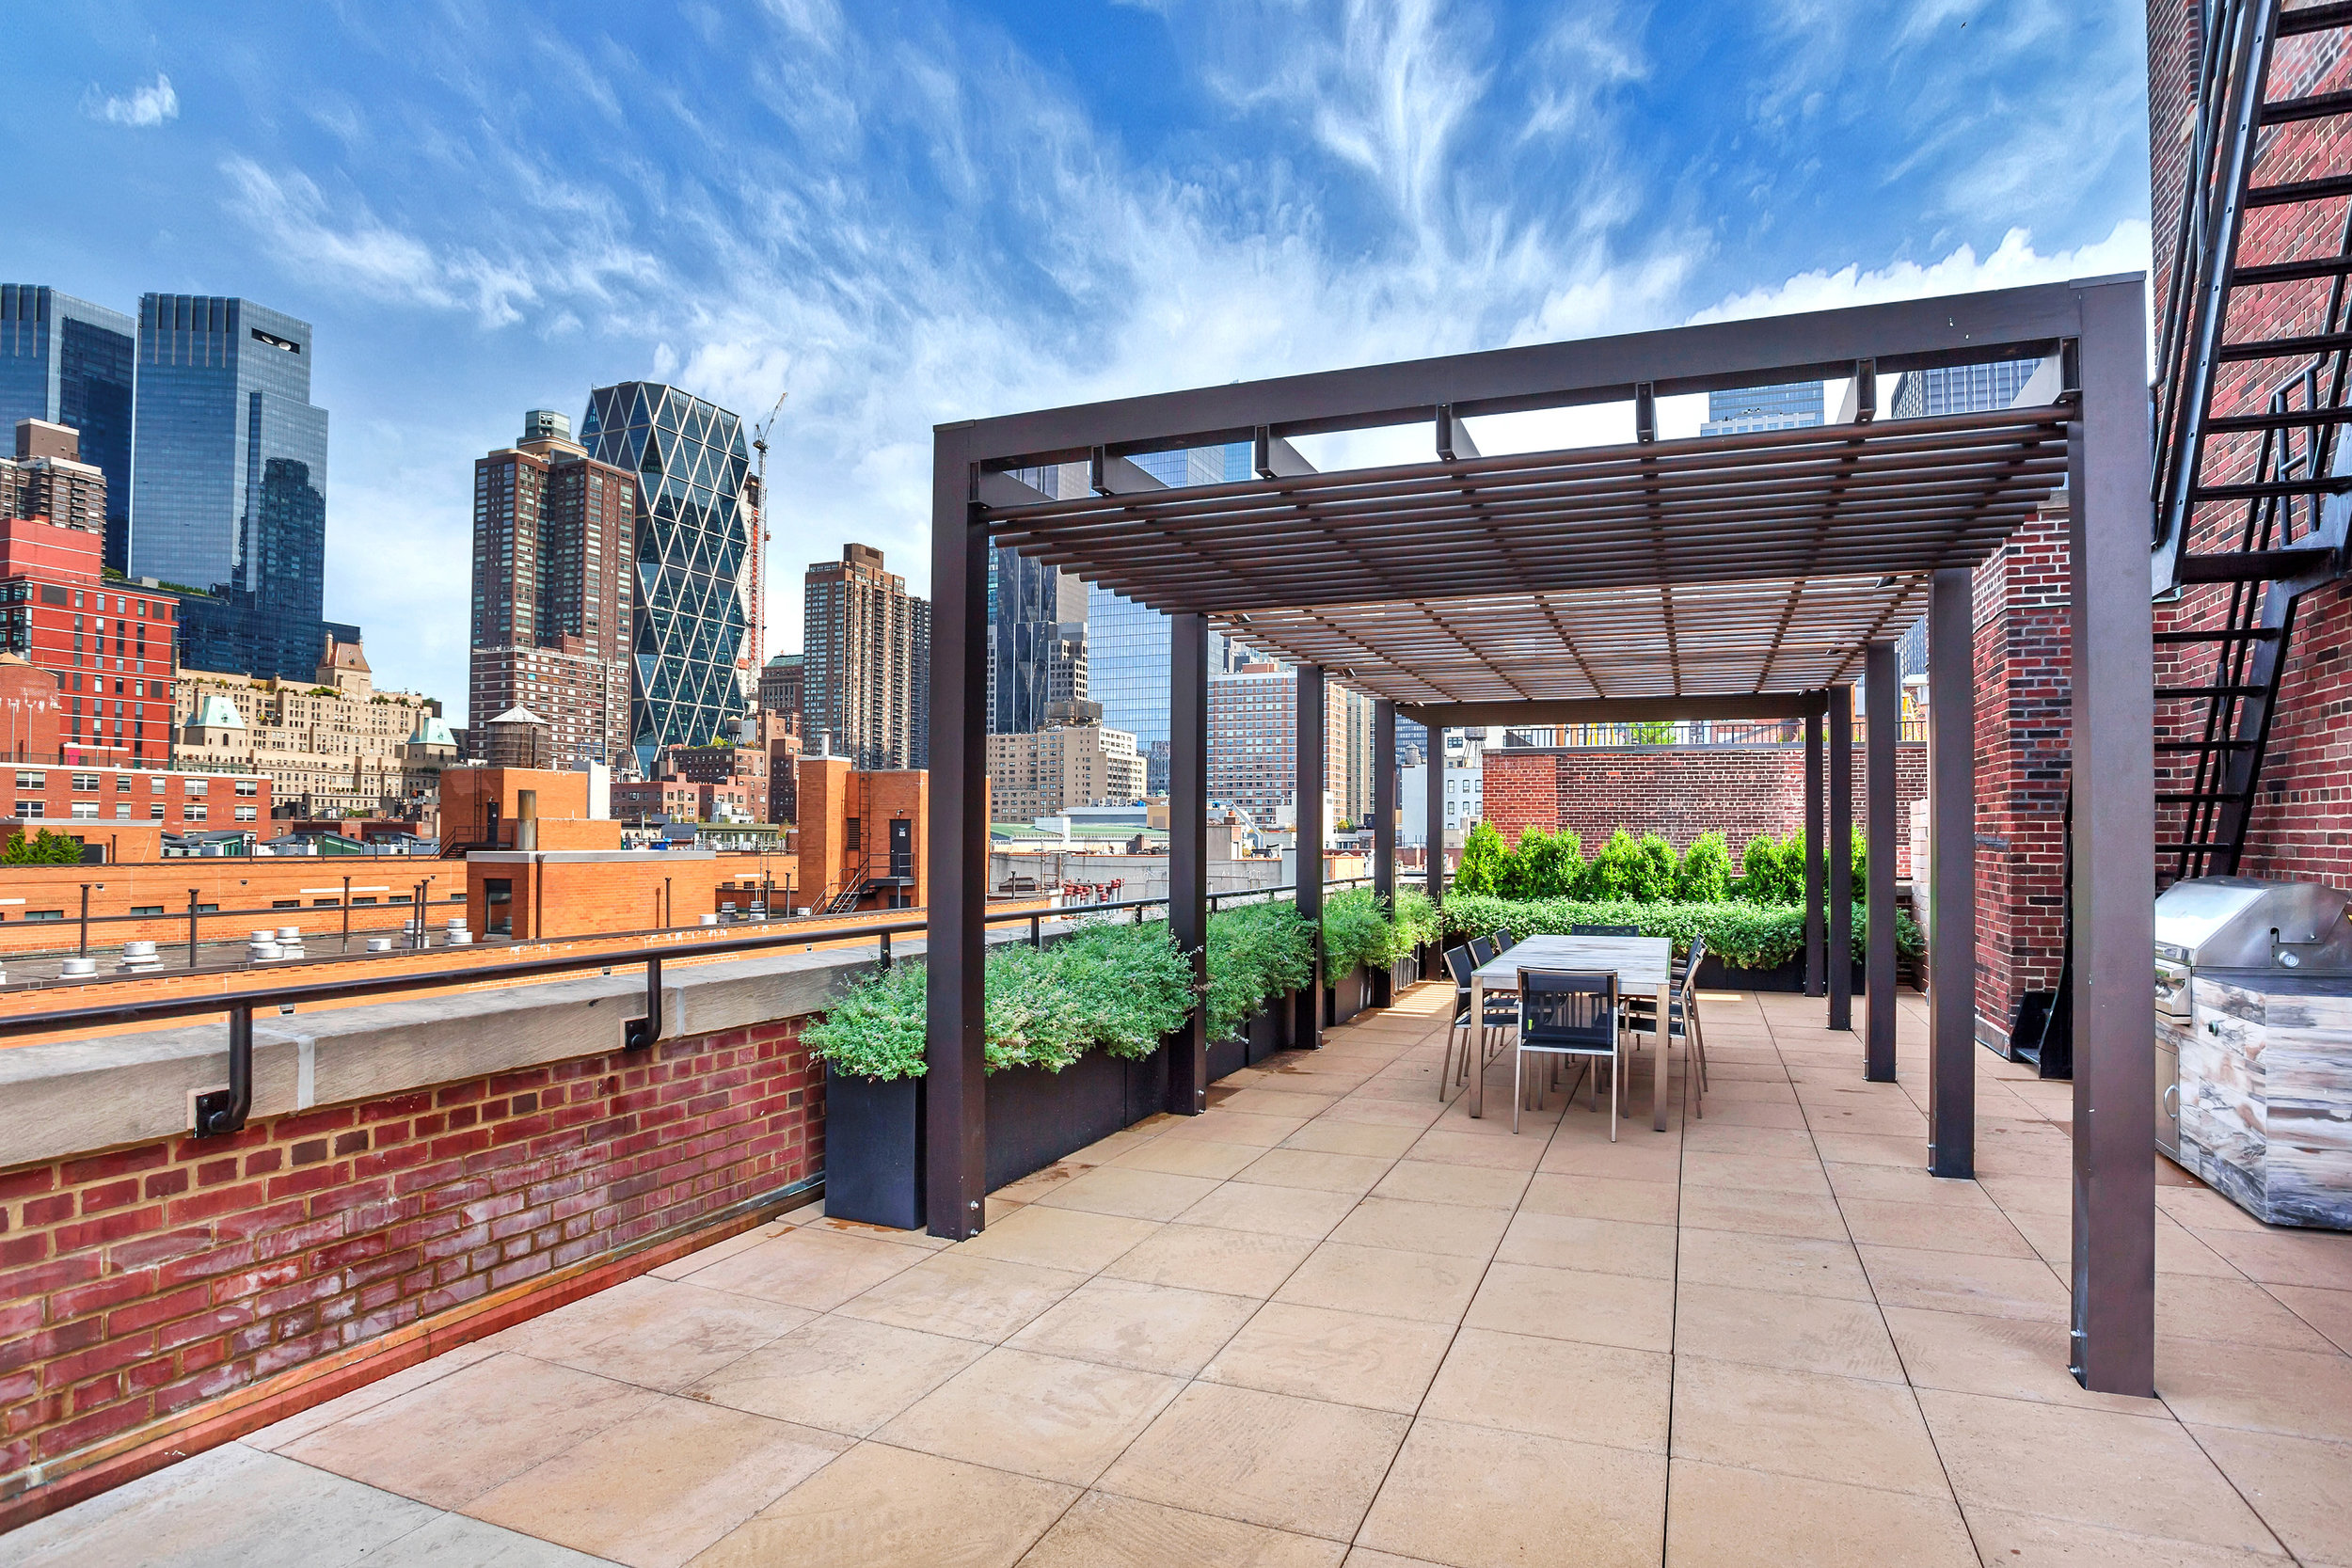 432w52ndst6a-roof2.jpg